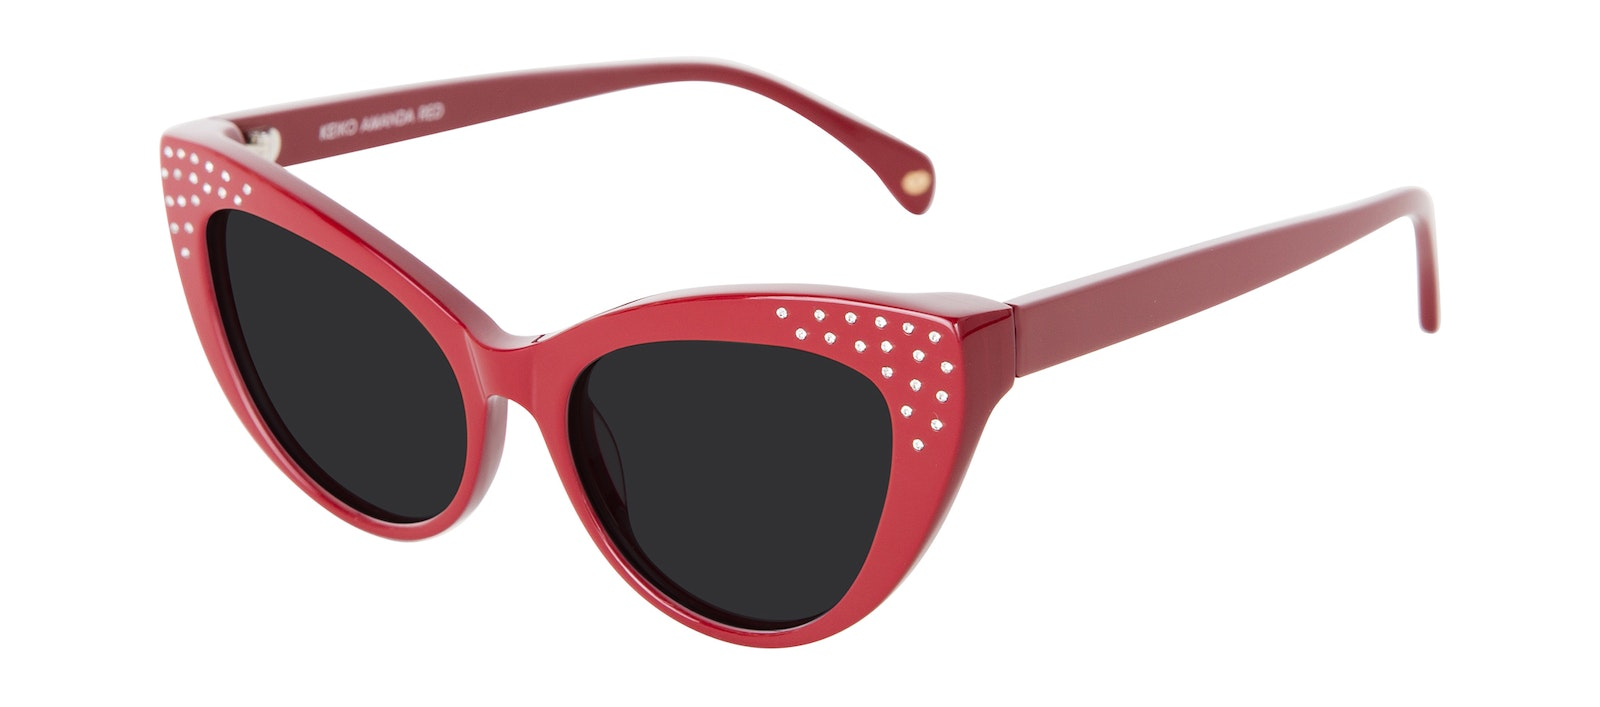 Affordable Fashion Glasses Cat Eye Daring Cateye Sunglasses Women Keiko Amanda Red Tilt